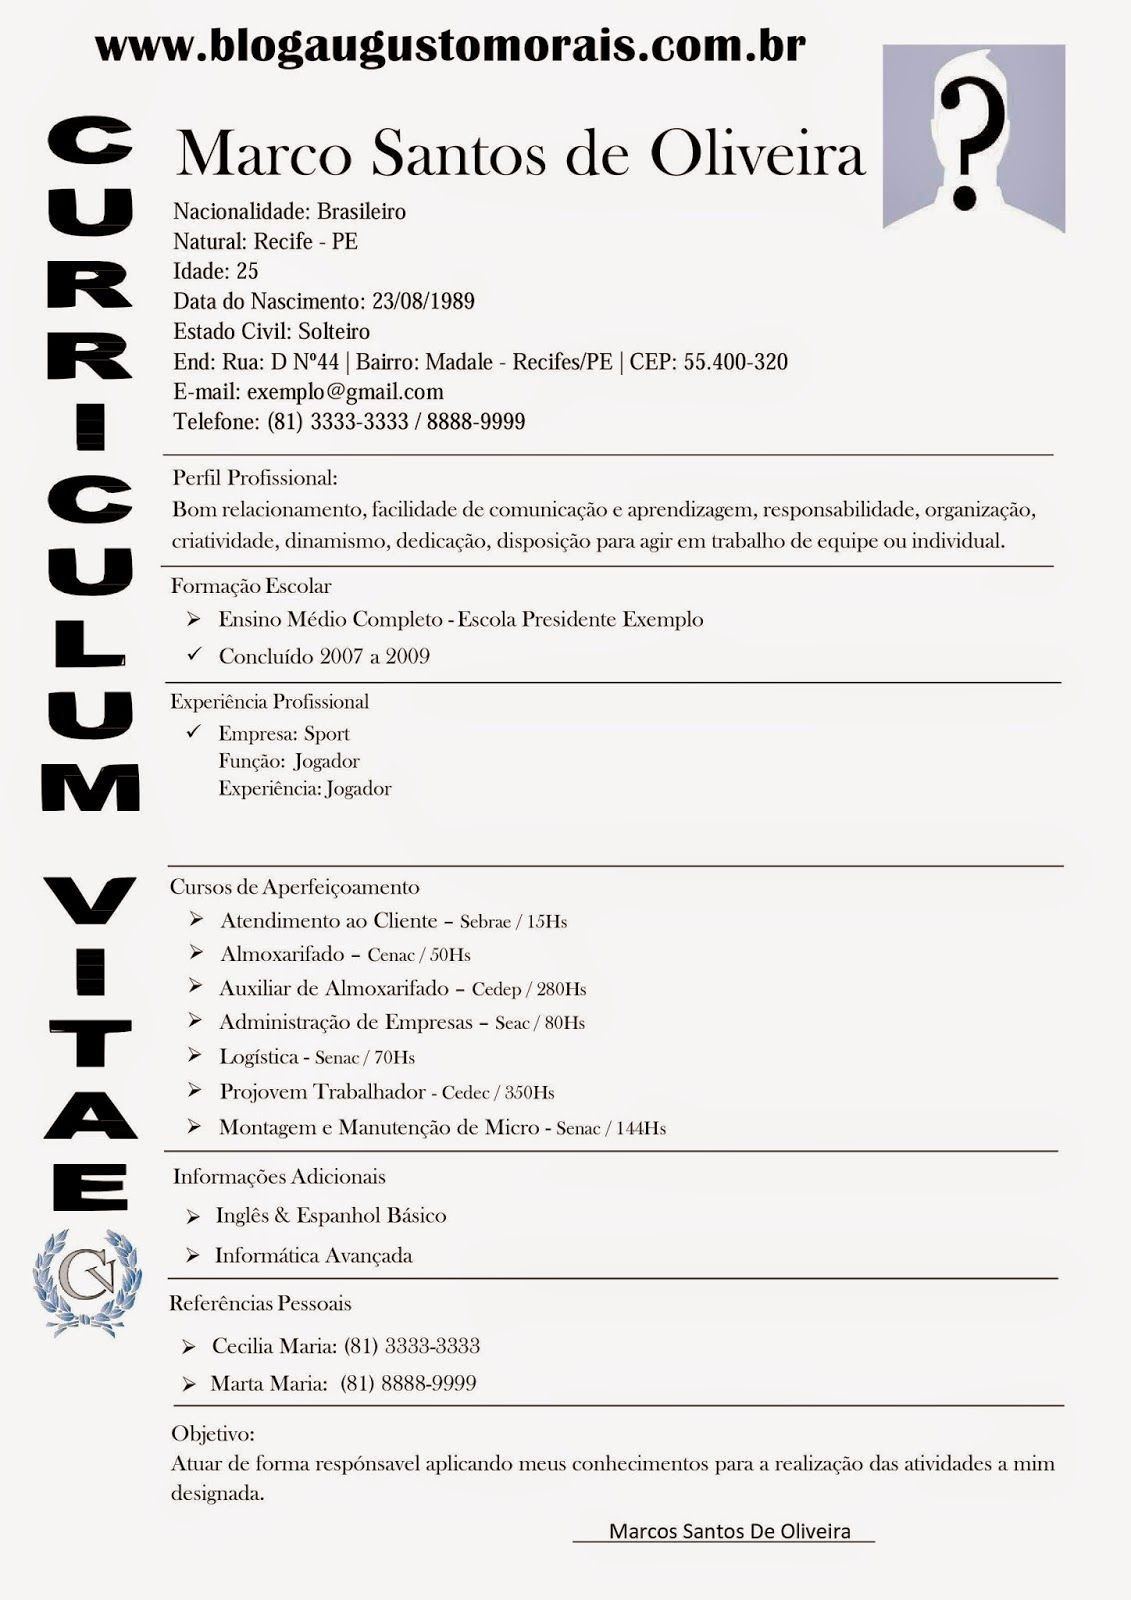 MODELO DE CURRICULUM PRONTO 2017 | Curriculo prontos | Pinterest ...